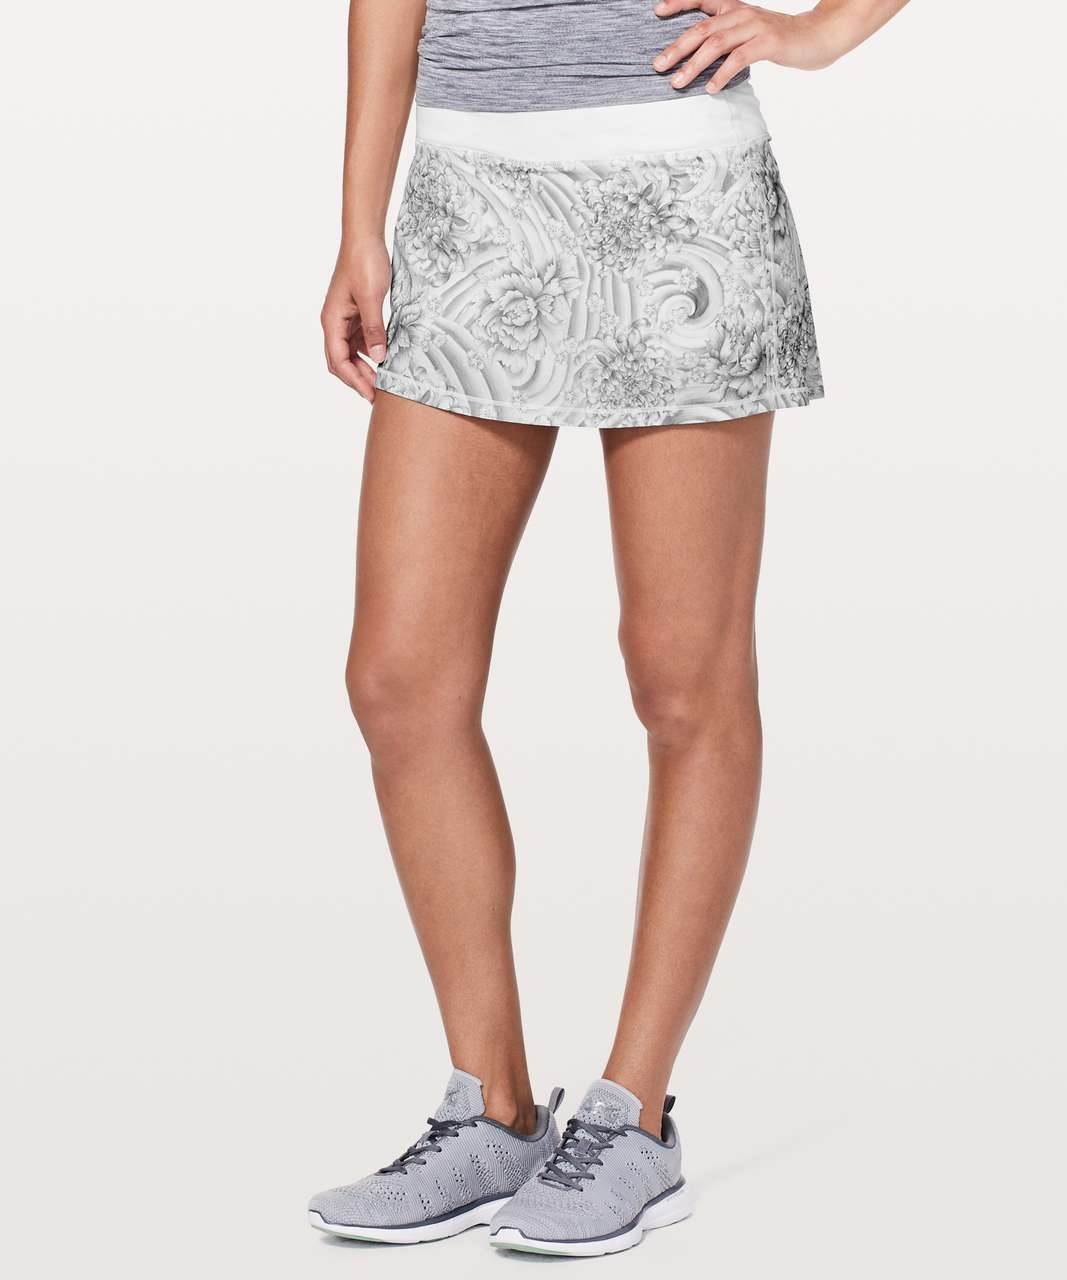 Lululemon Pace Rival Skirt (Regular) *No Panels - Mini Twine White Multi / White